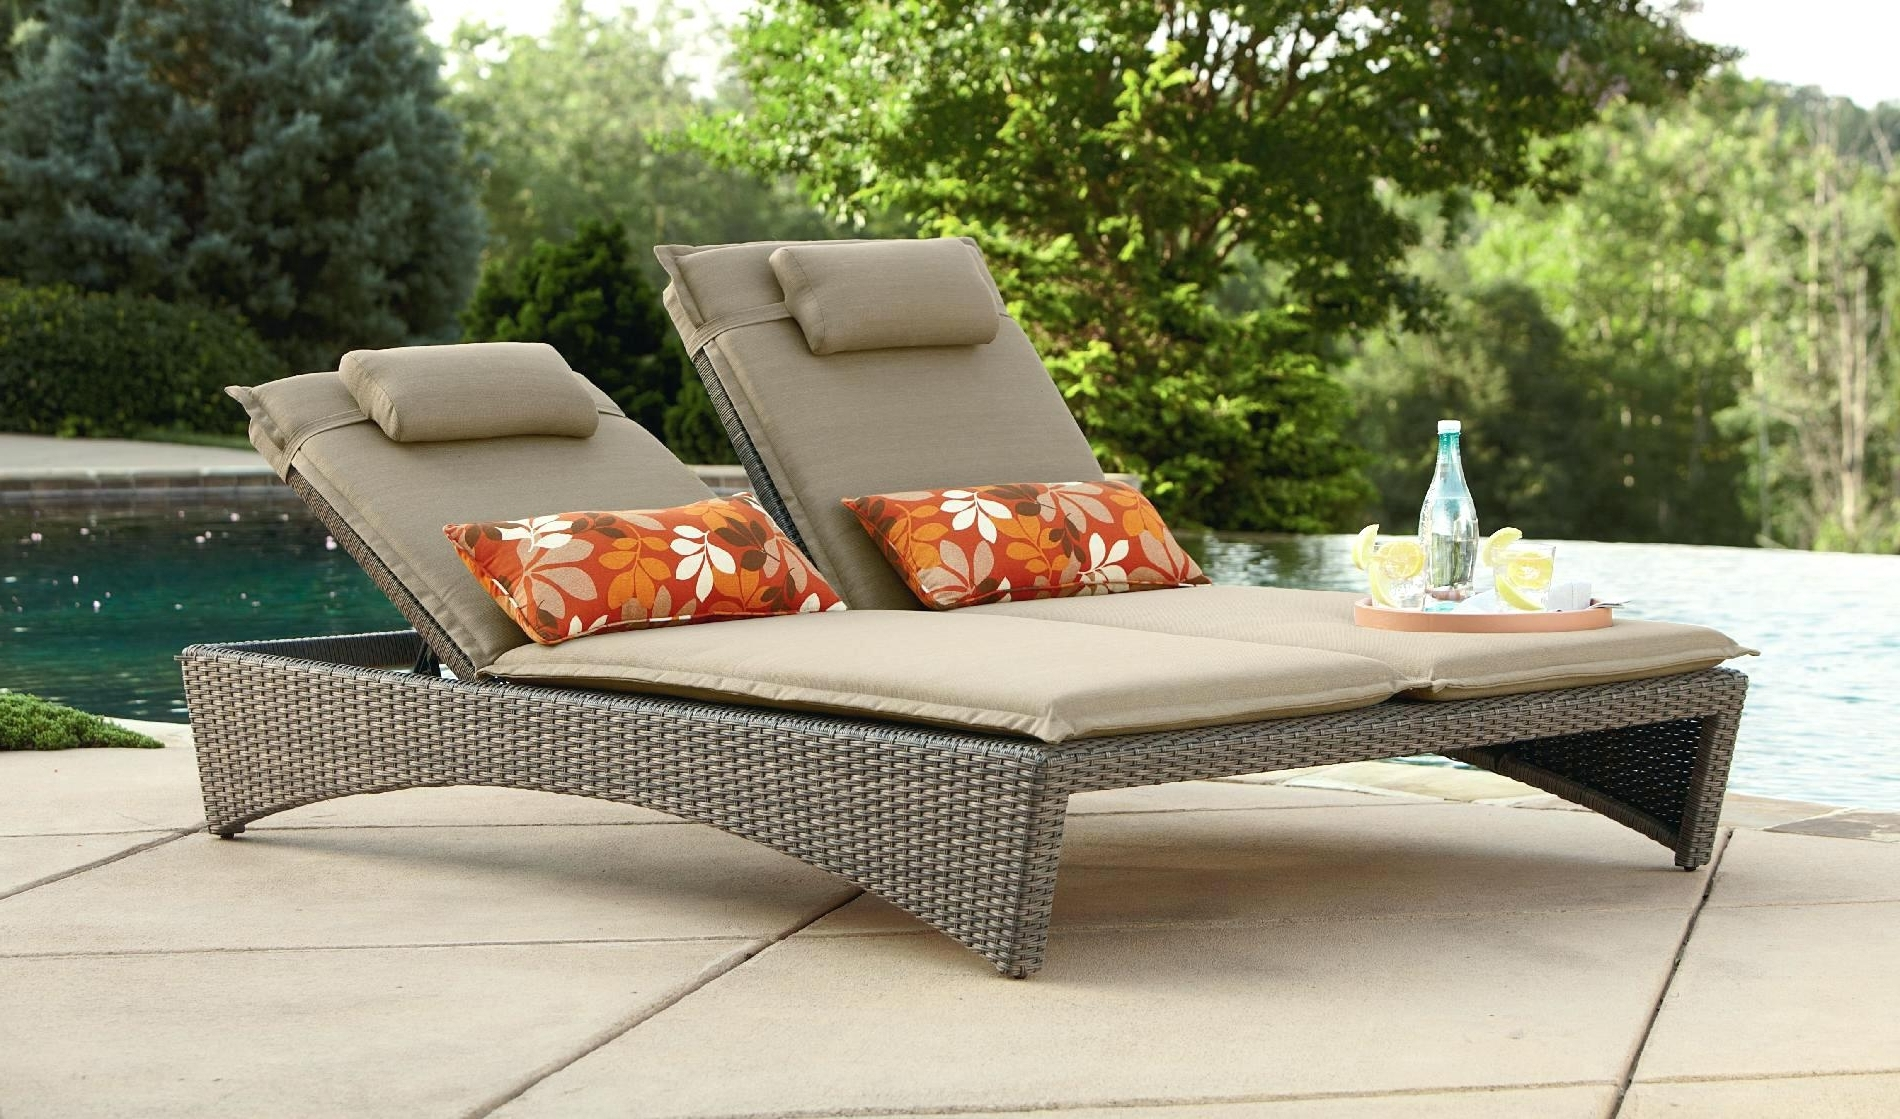 Chaise Lounge Chairs For Outdoor In Well Liked Outdoor Chaise Lounge Chairs Under 100 Awesome Chair For Two (View 3 of 15)